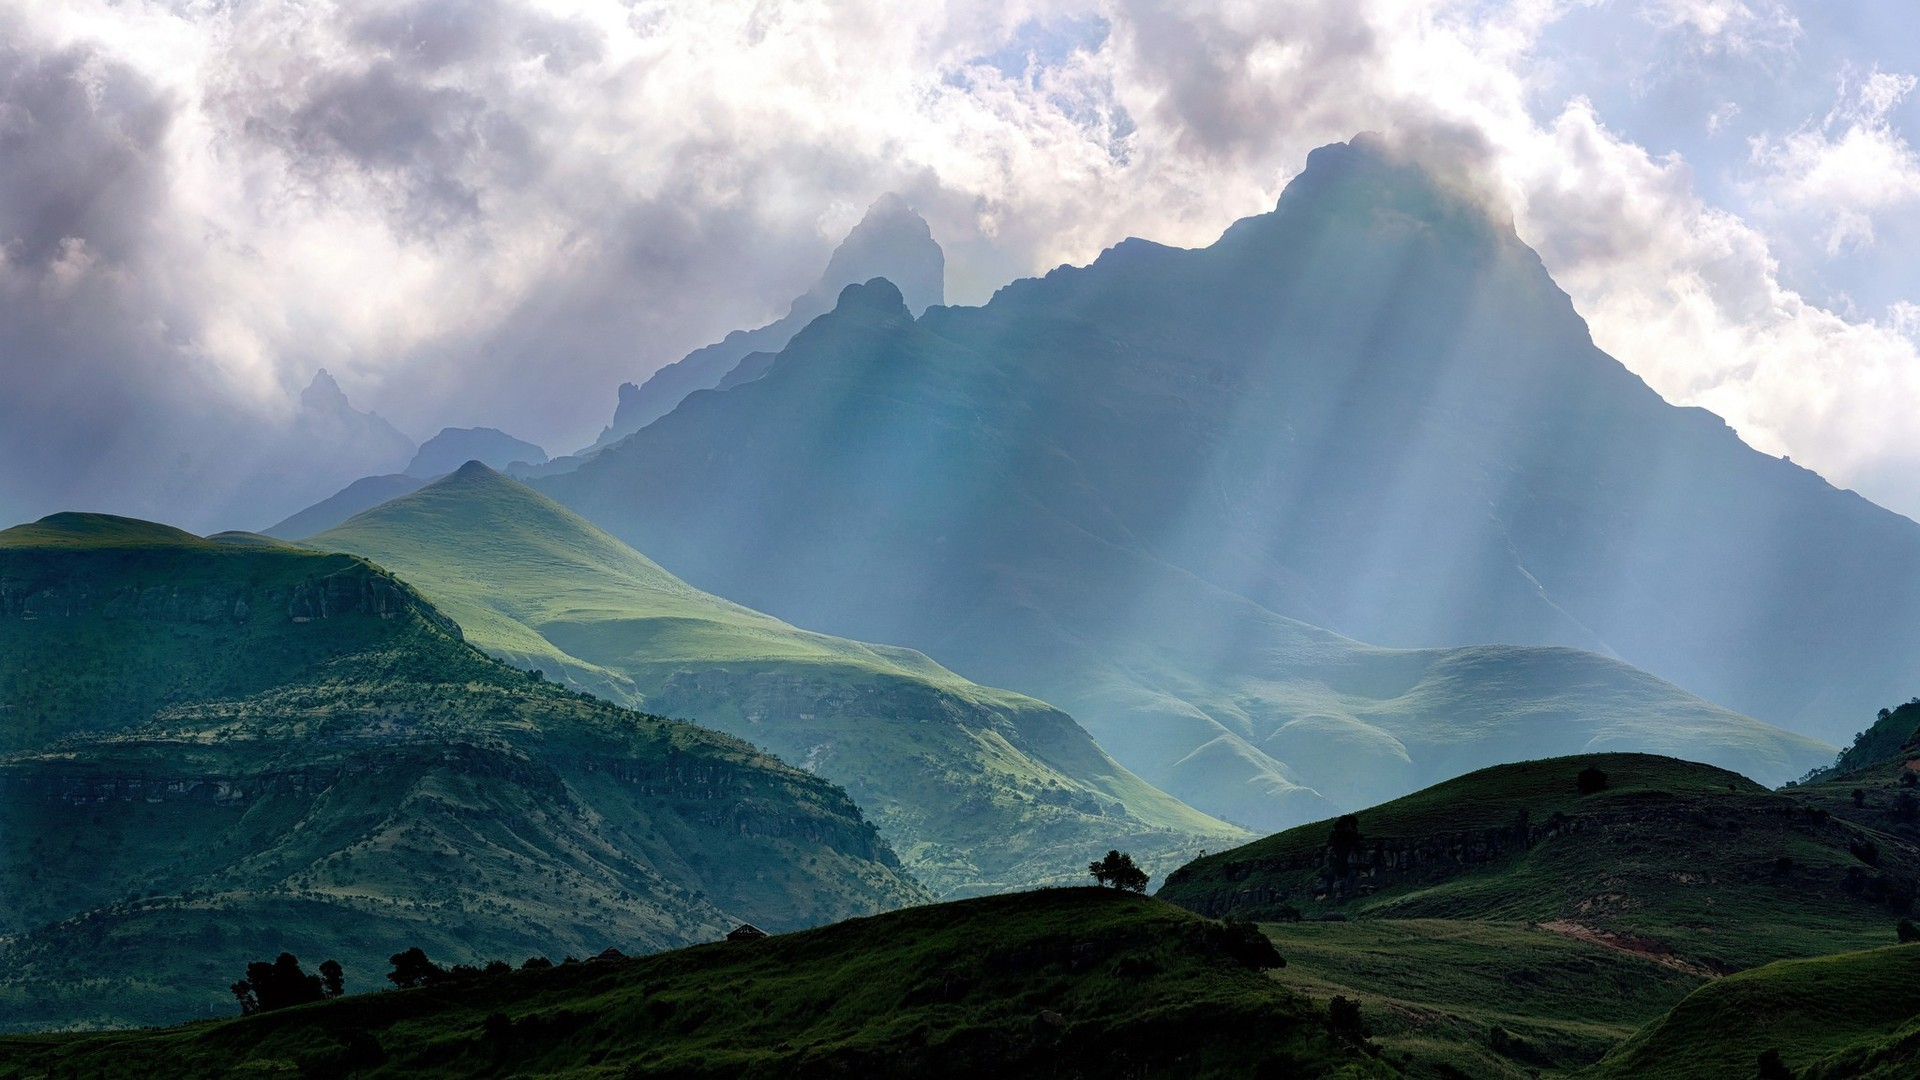 Drakensberg mountains tallest in south africa wallpaper for 3d wallpaper for home south africa